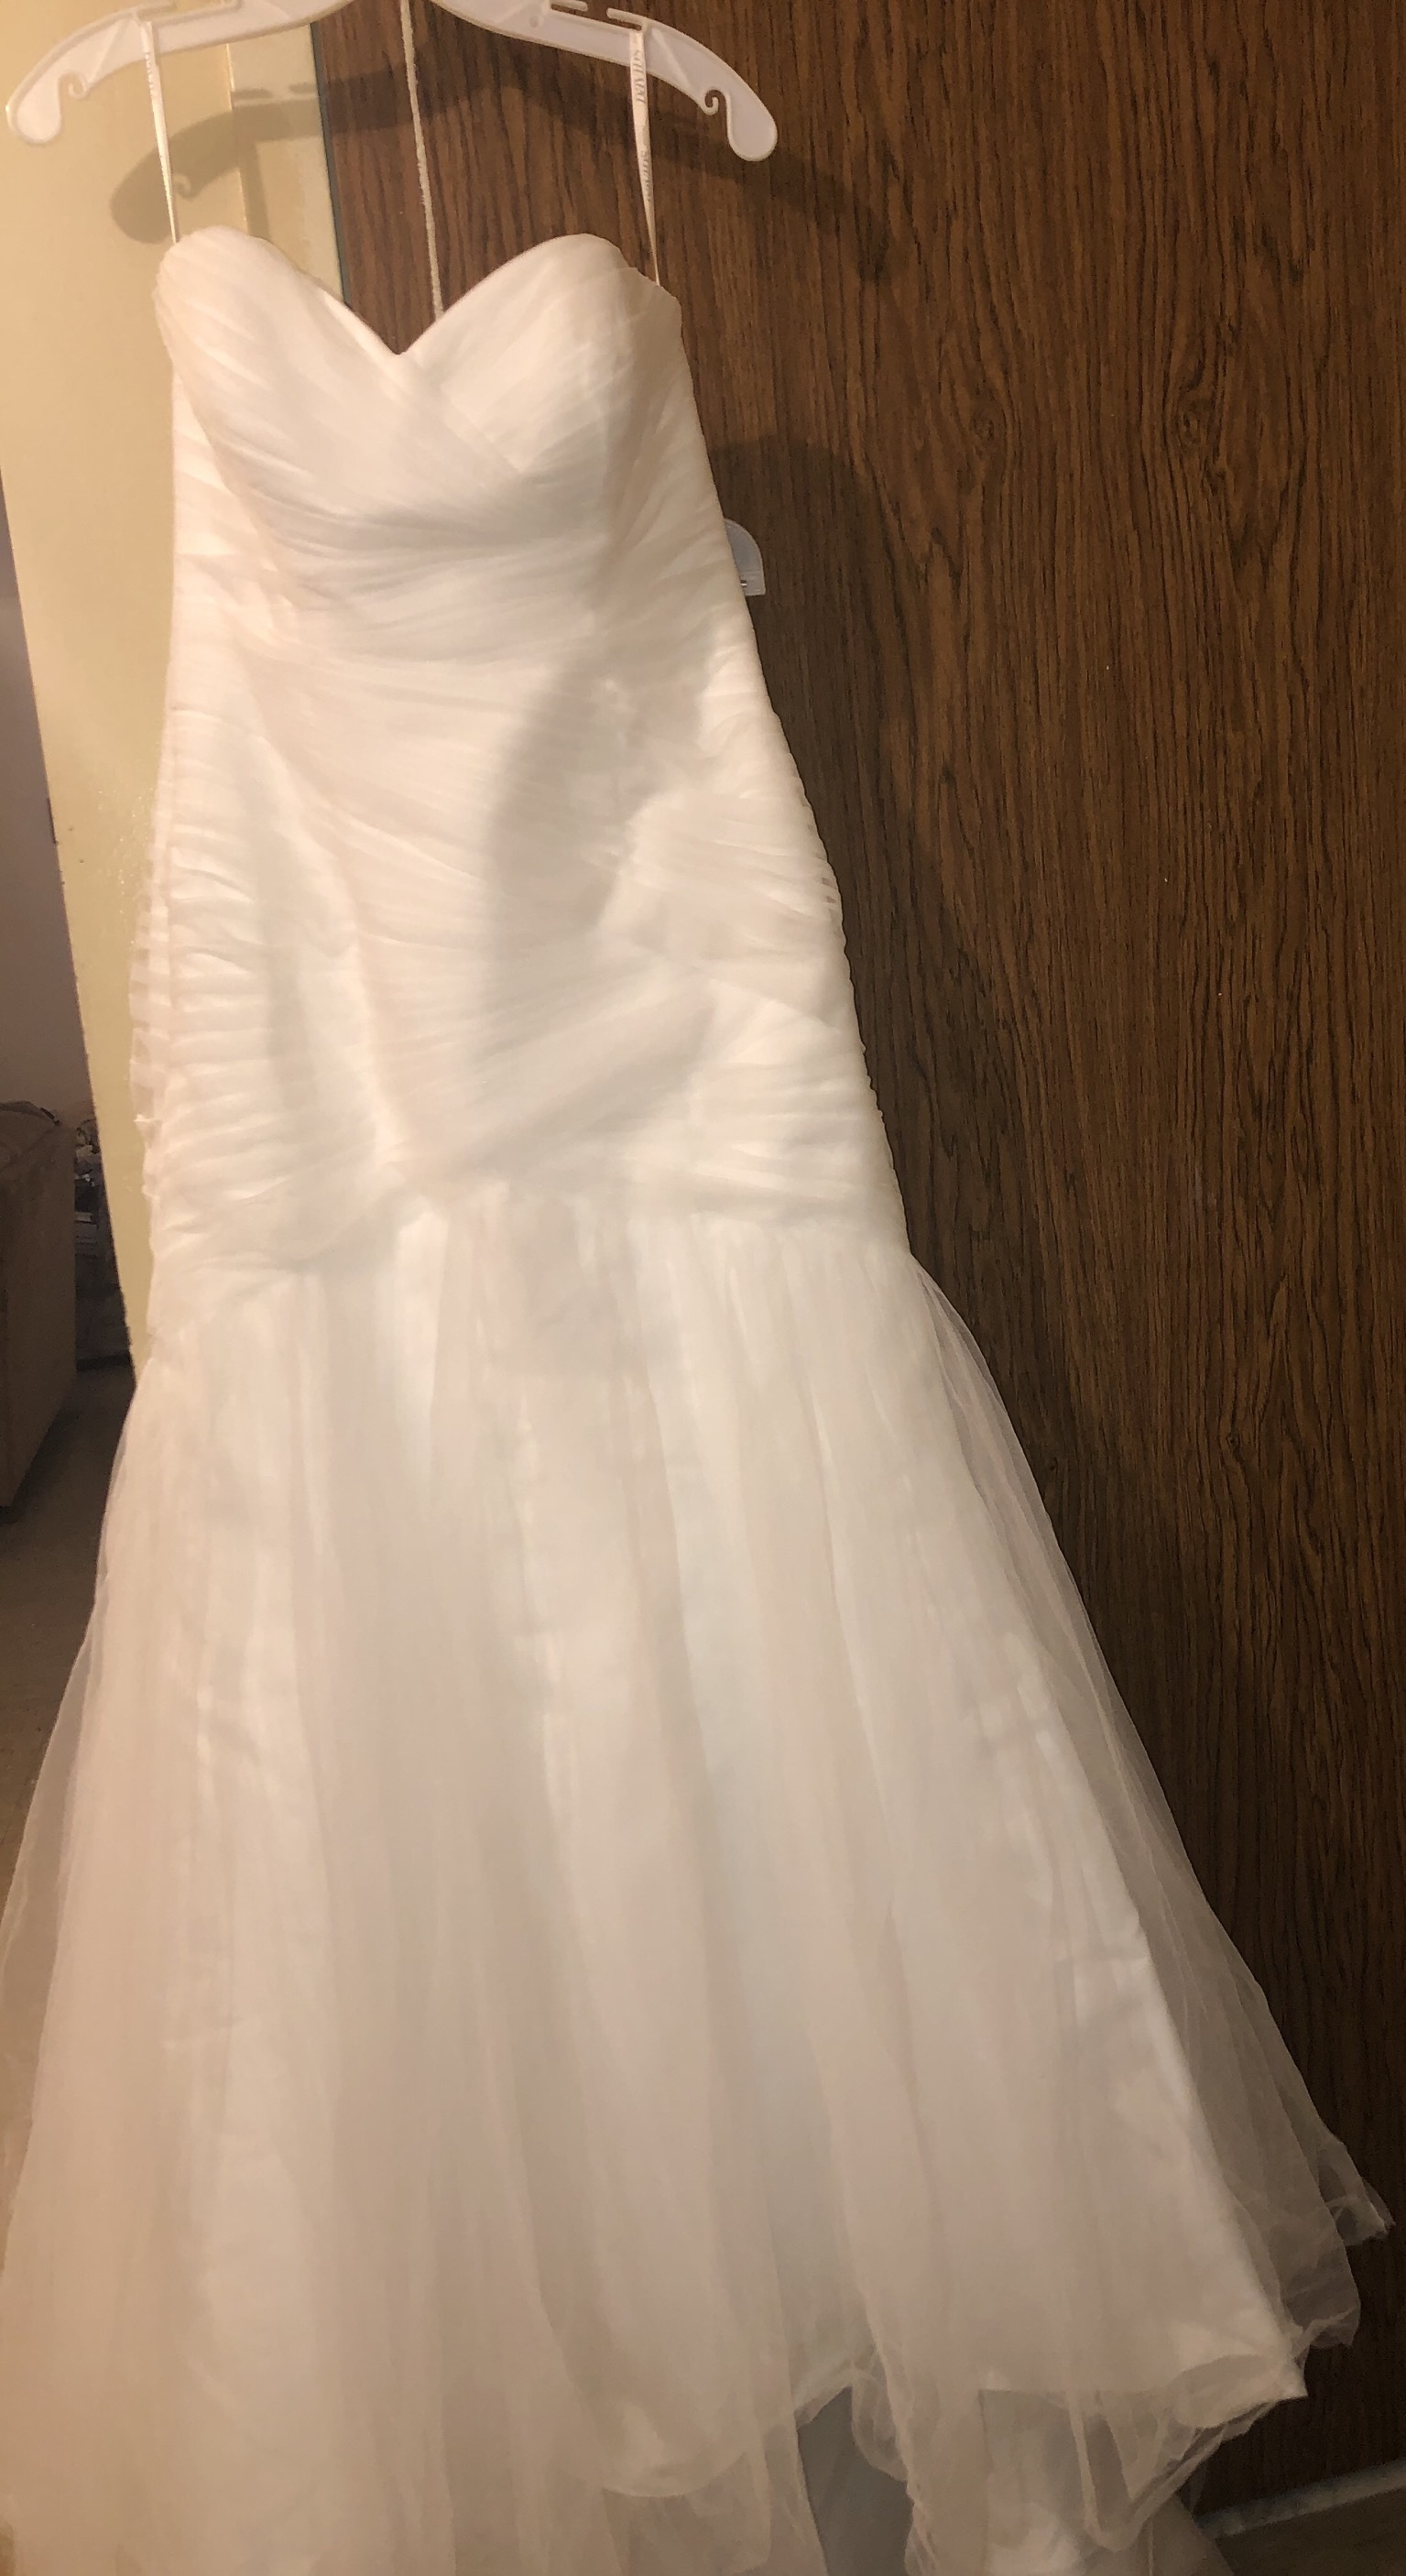 David's bridal - WG3791 size 12 - $325 - (35% OFF)